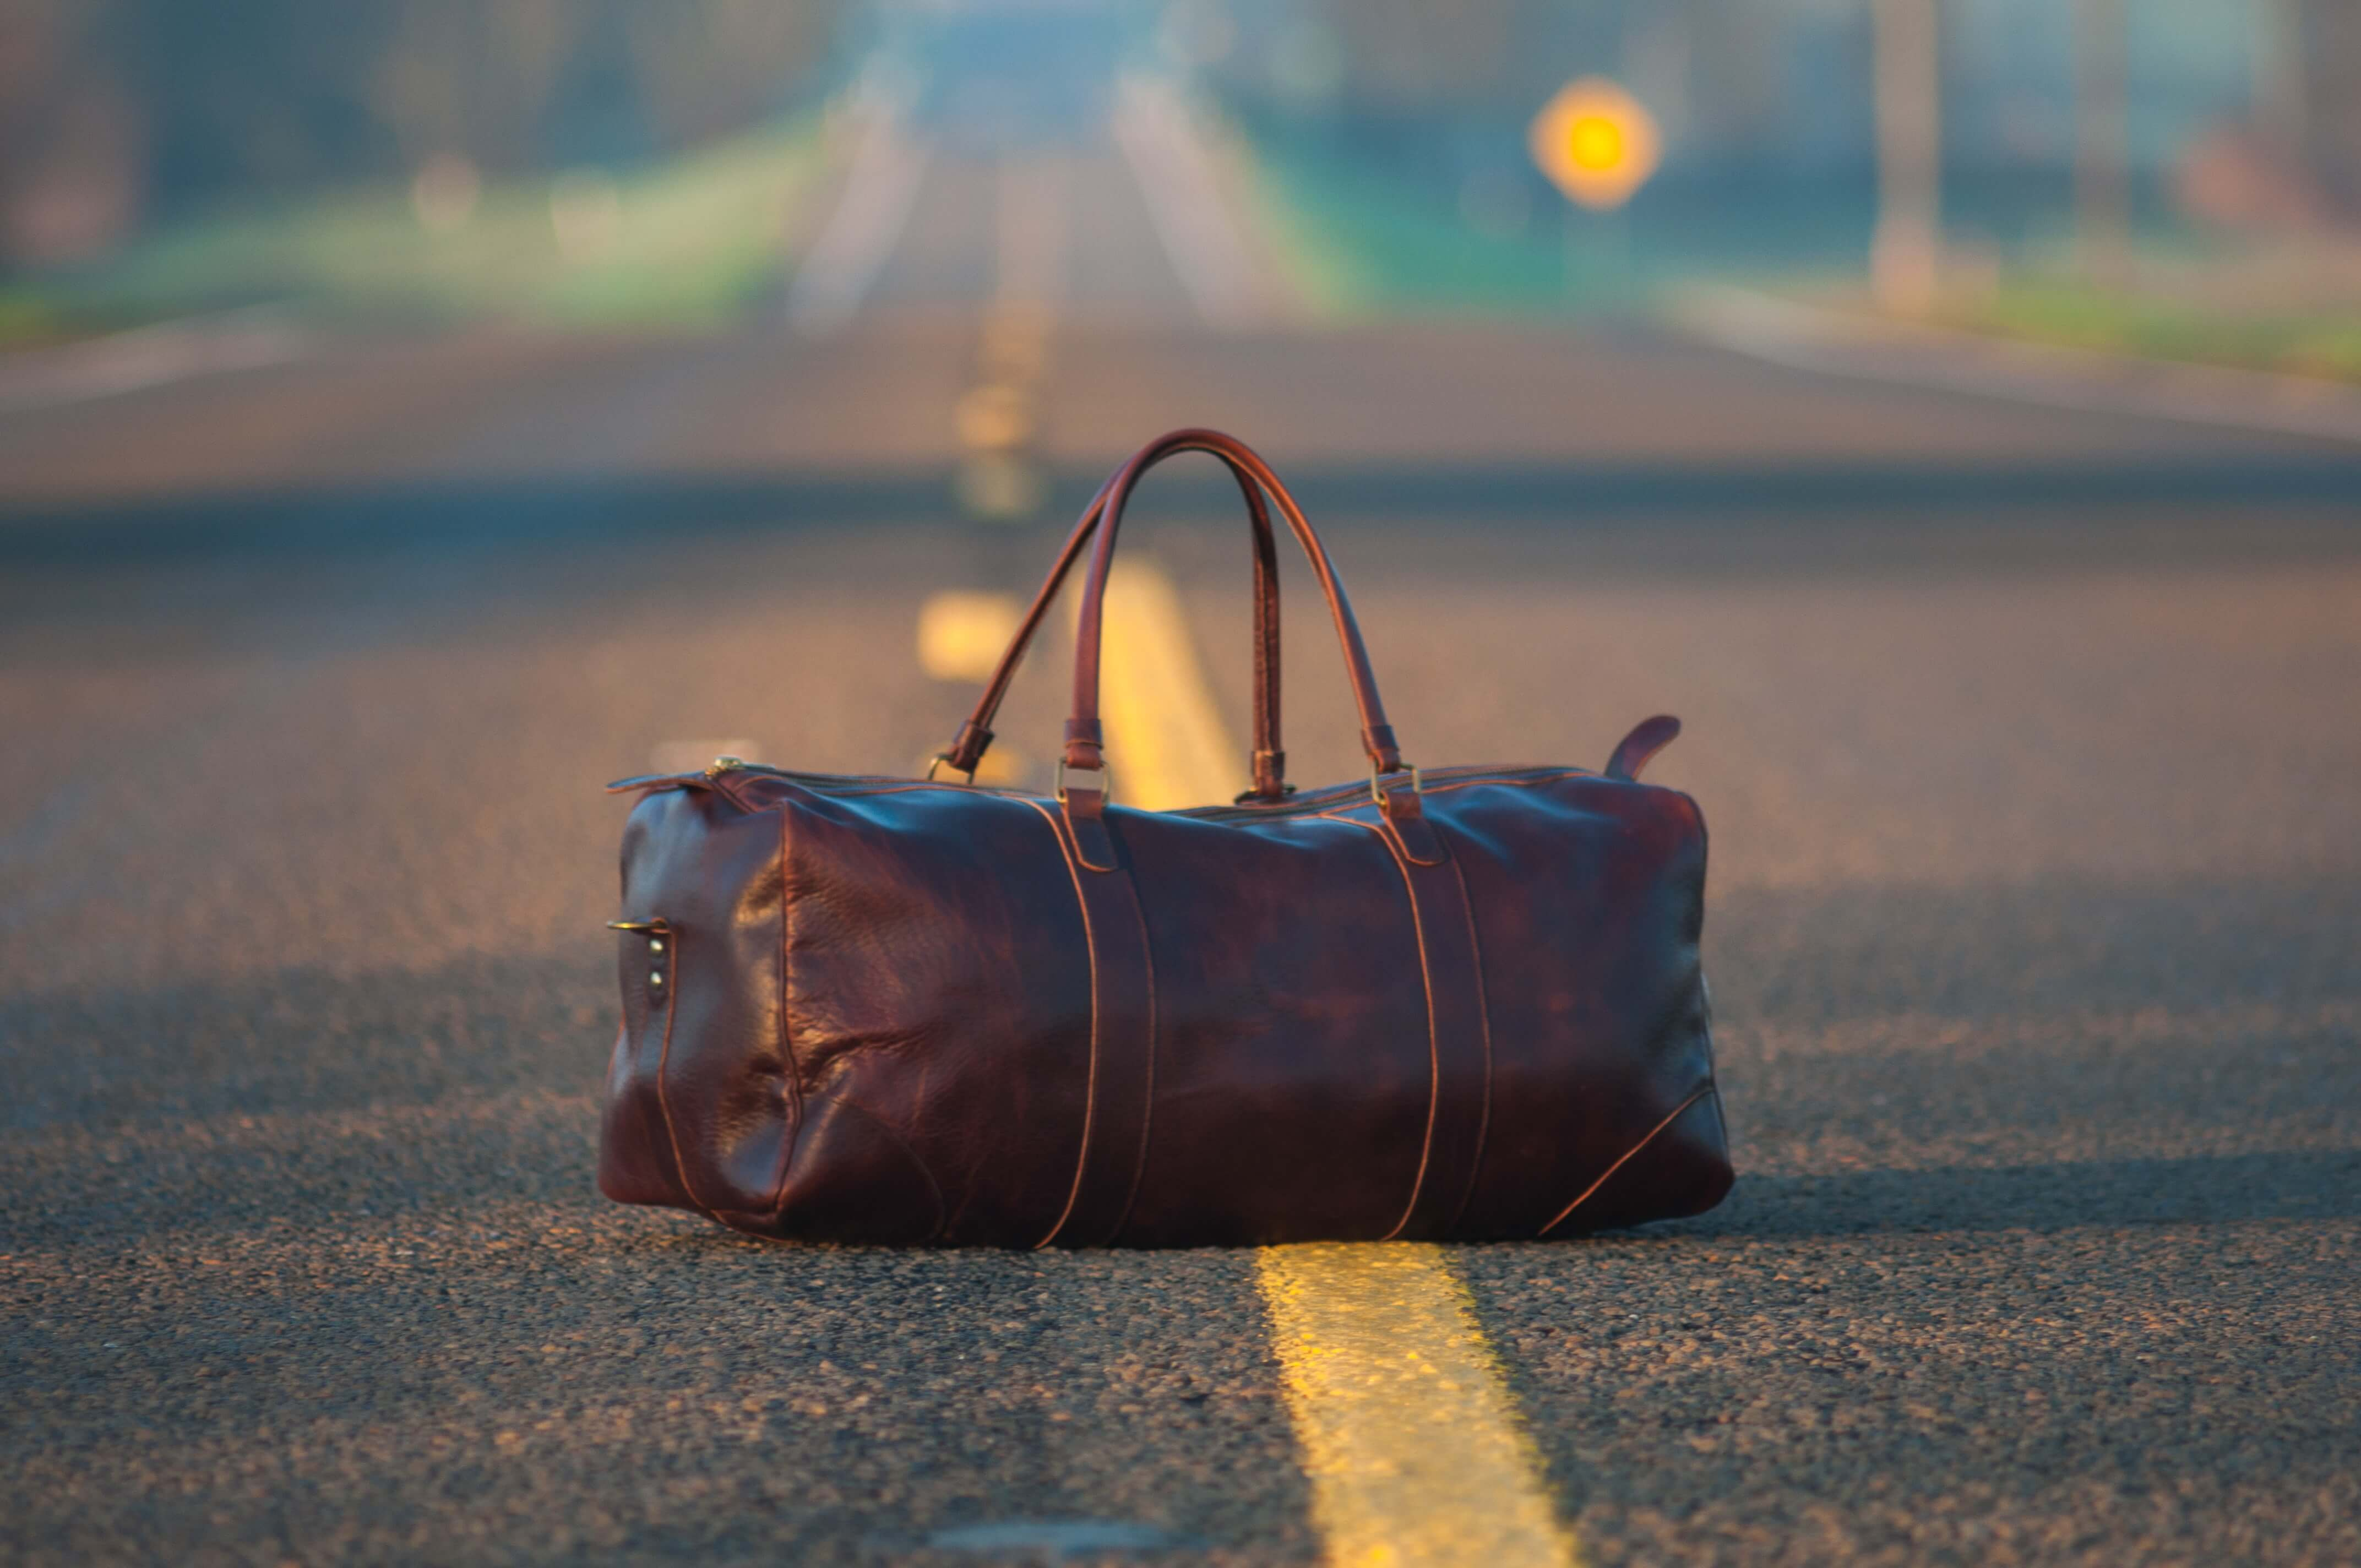 a brown leather bag in the middle of a road illustrates this story on Europe packing list